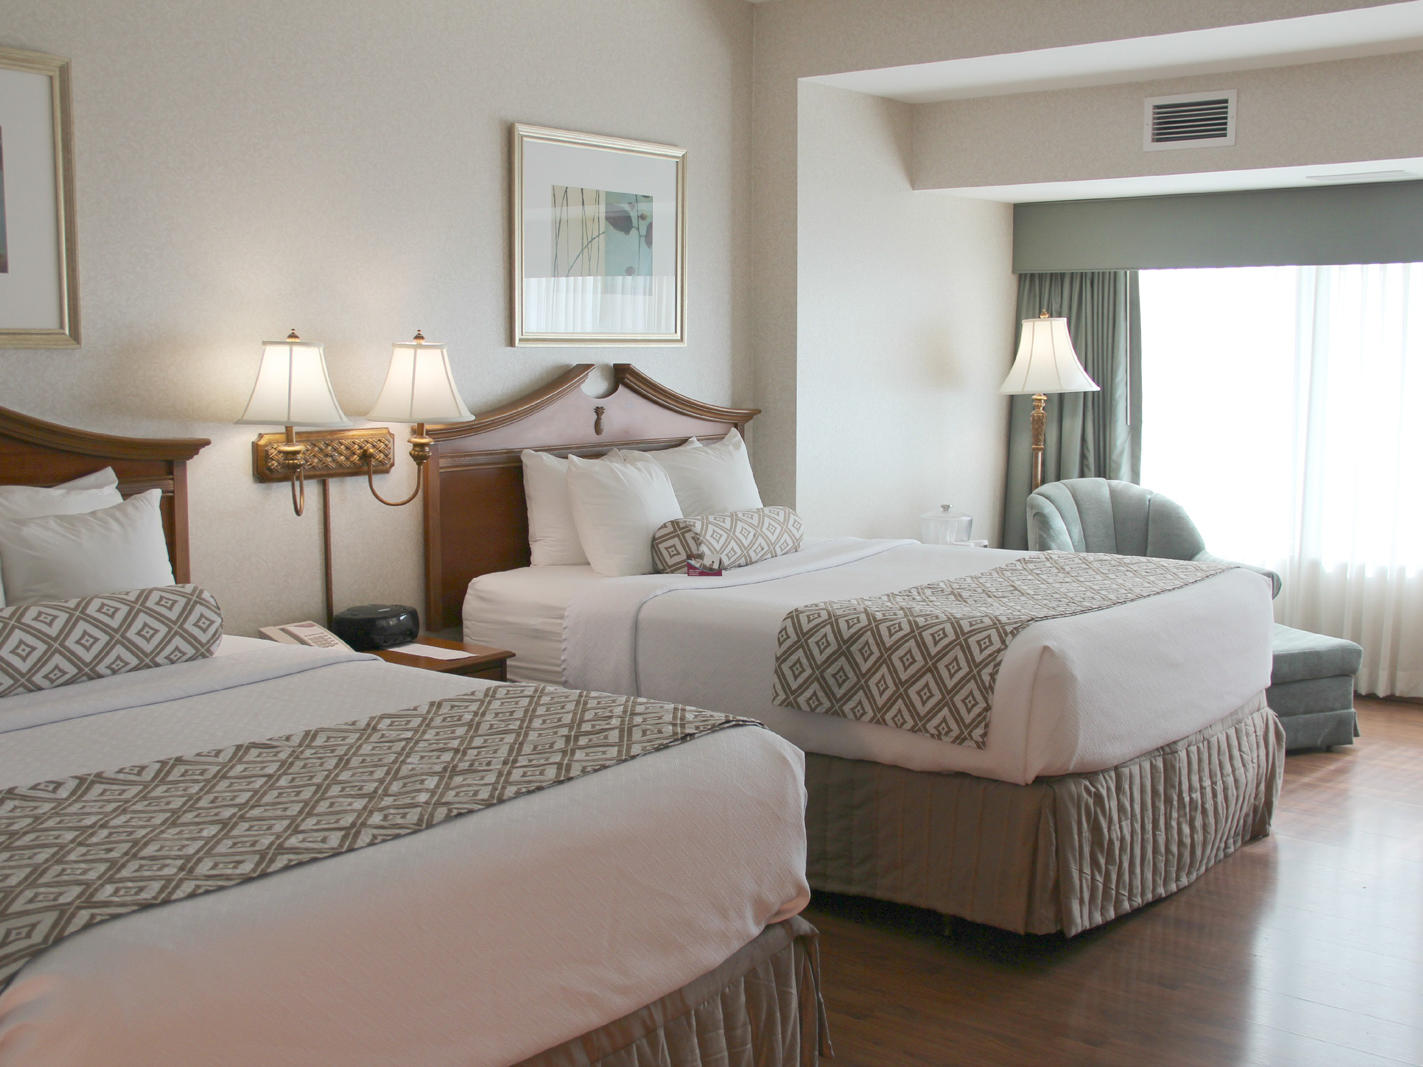 beds in a spacious hotel room